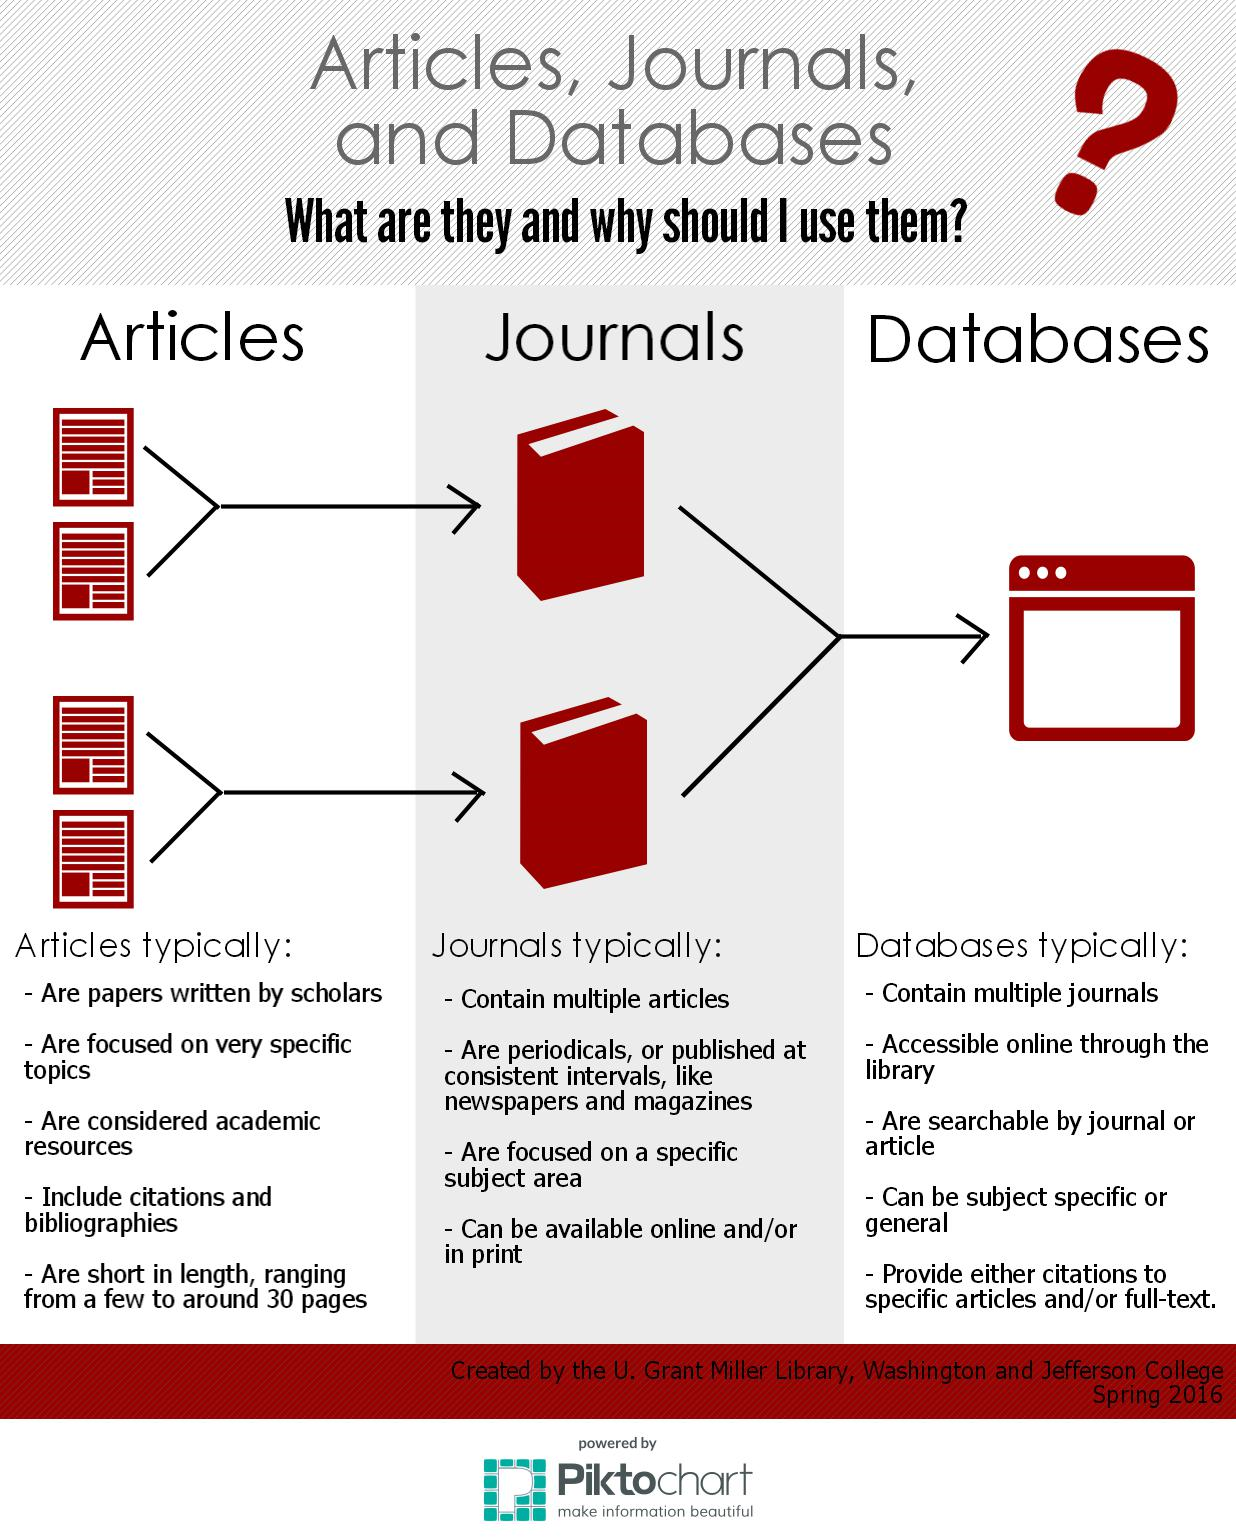 Articles, Journals, and databases infographic